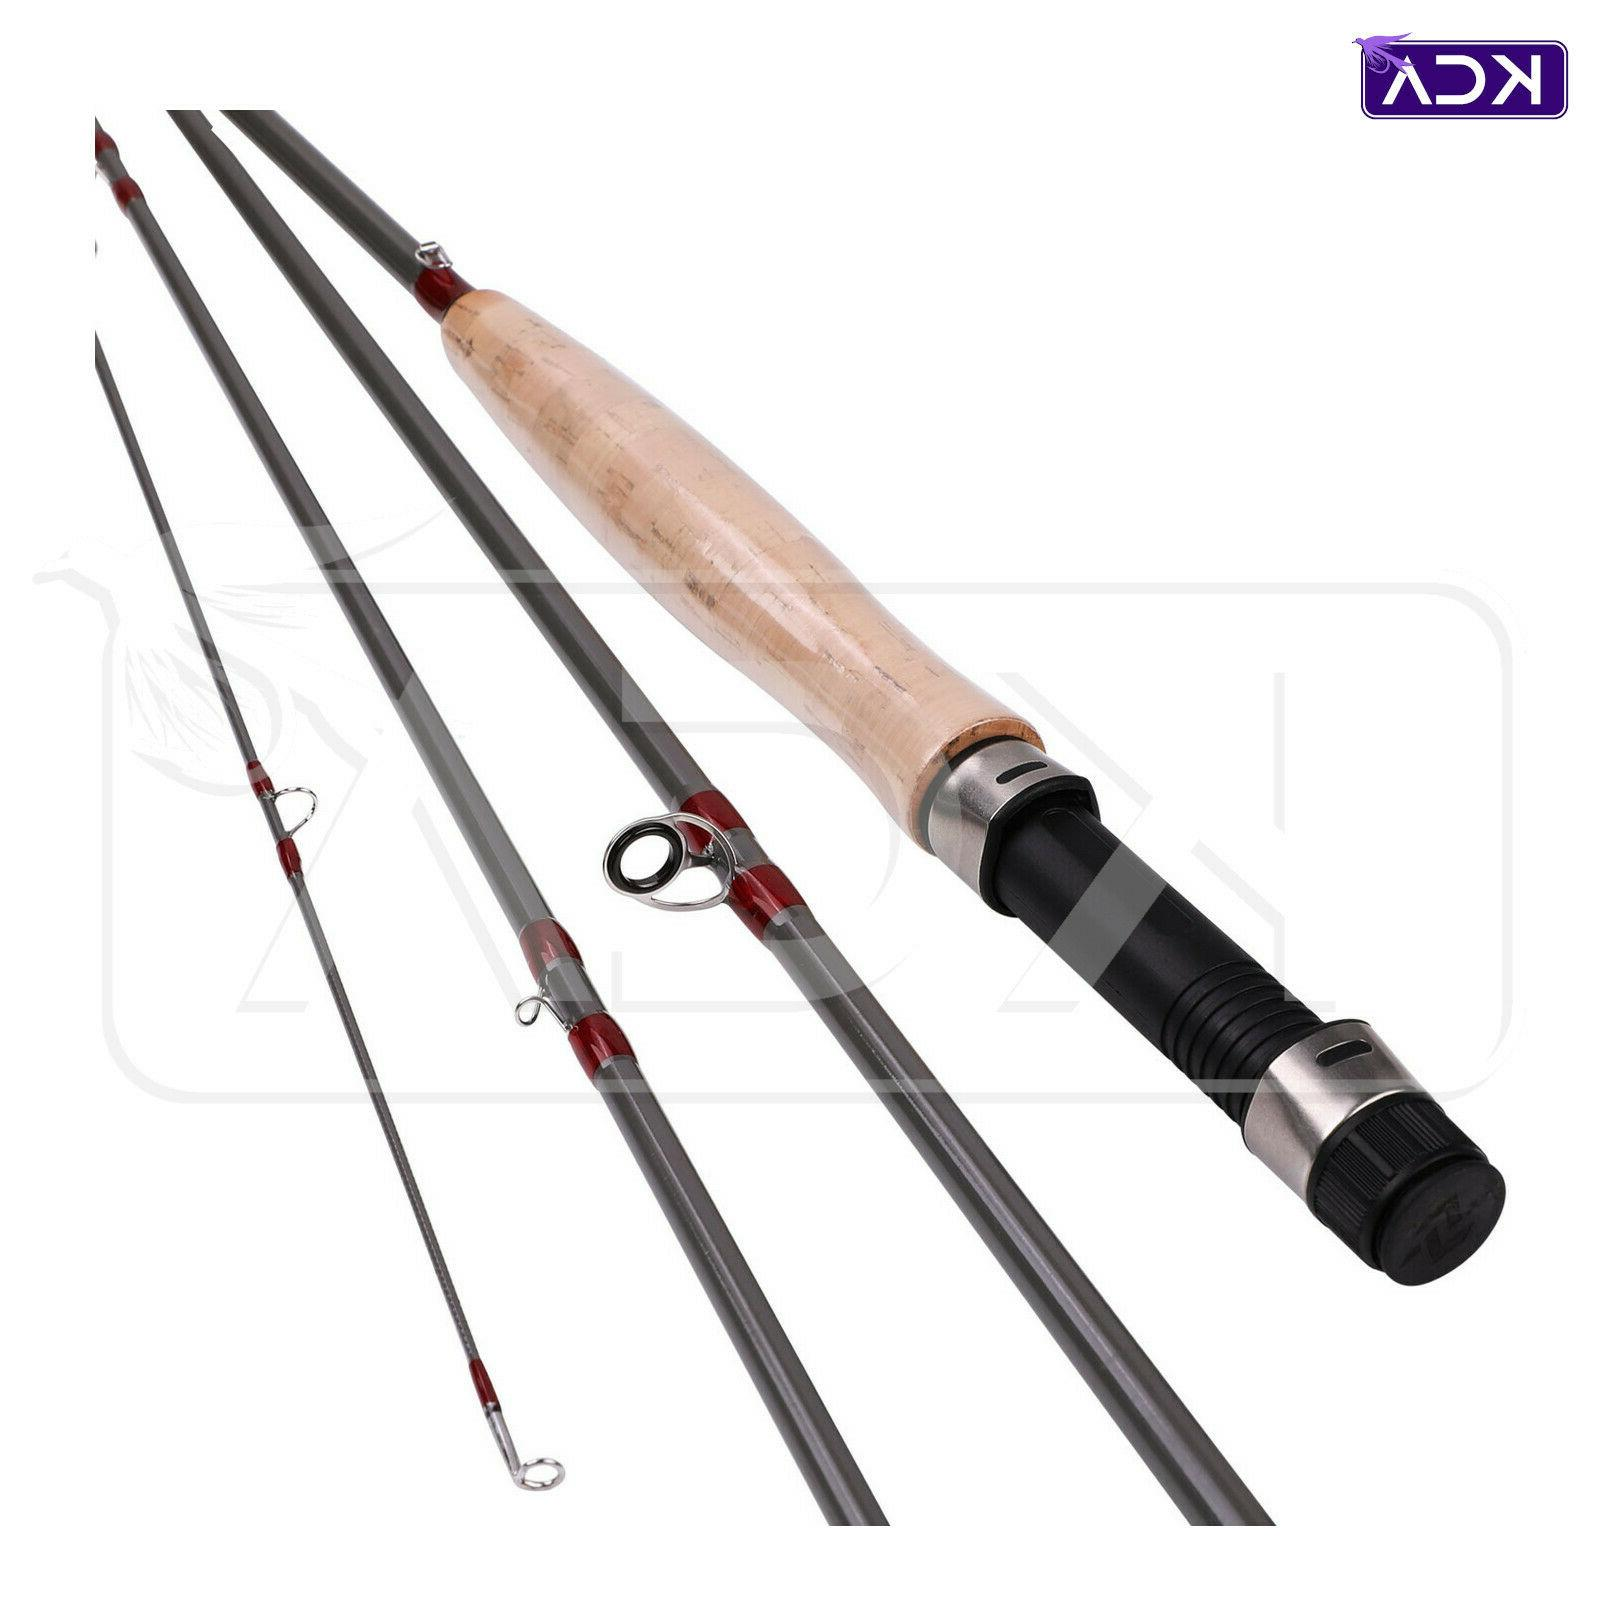 fly fishing rod fast action 9ft 5wt